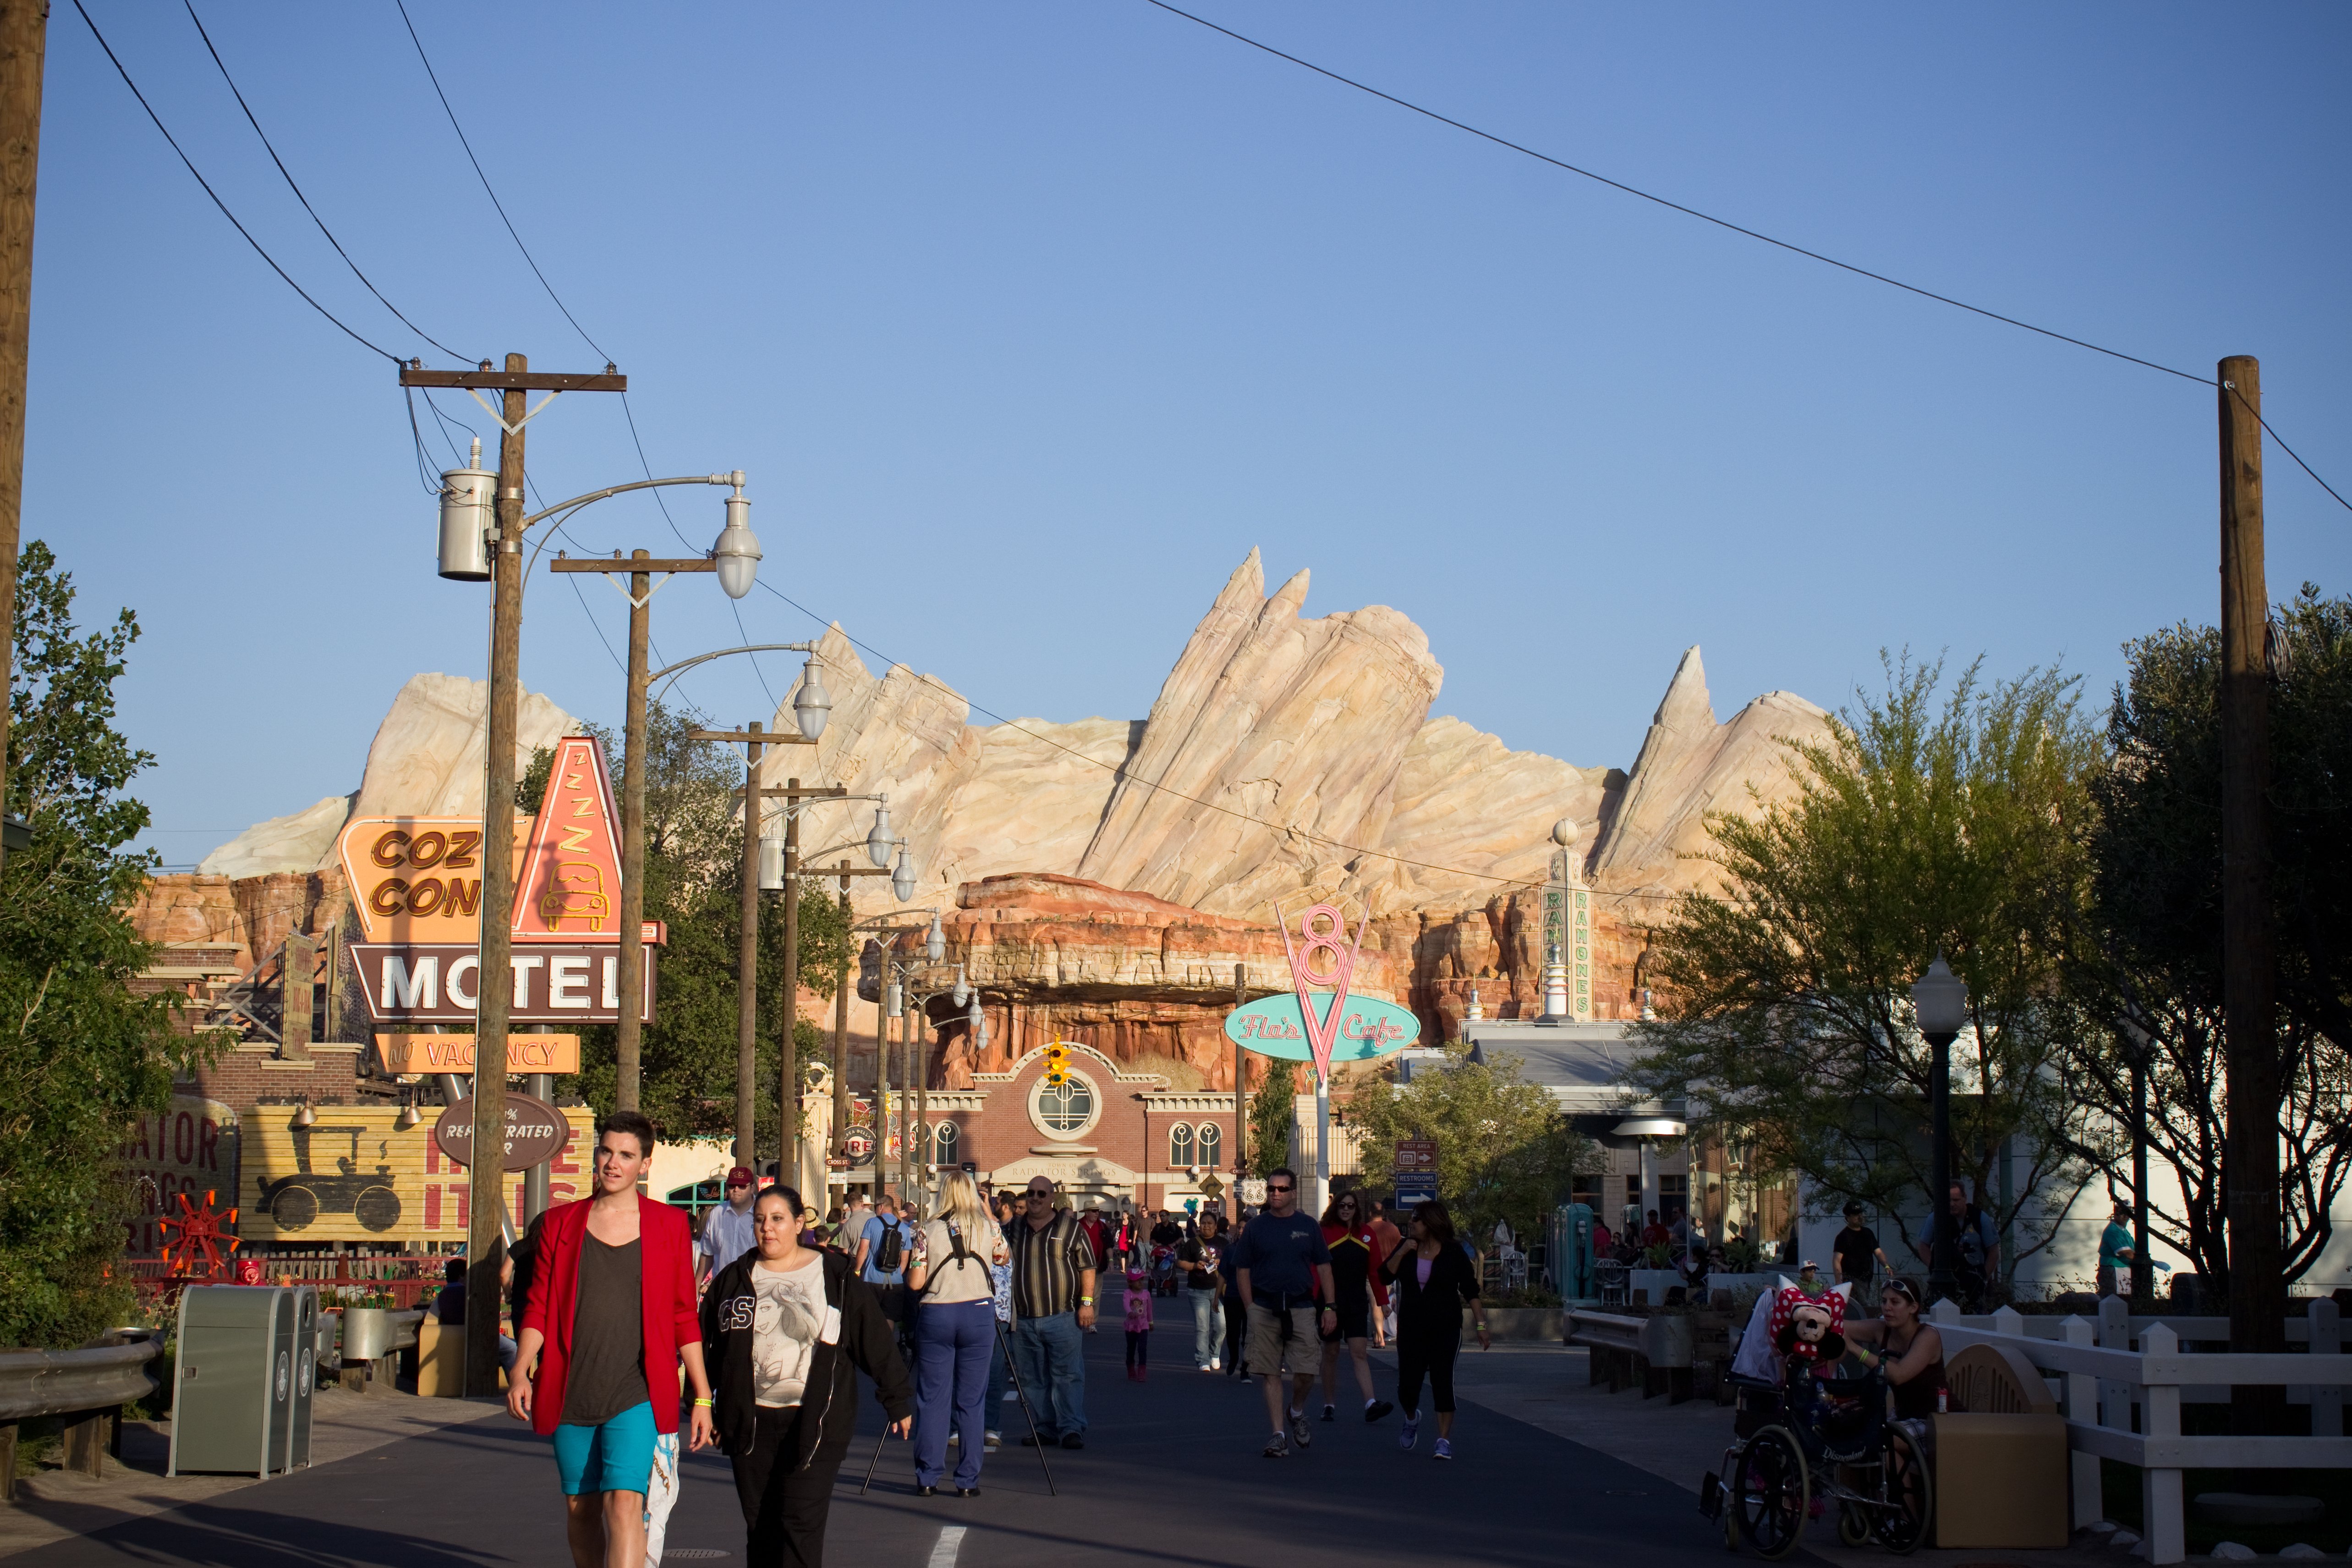 fichier:radiator springs route 66 — wikipédia